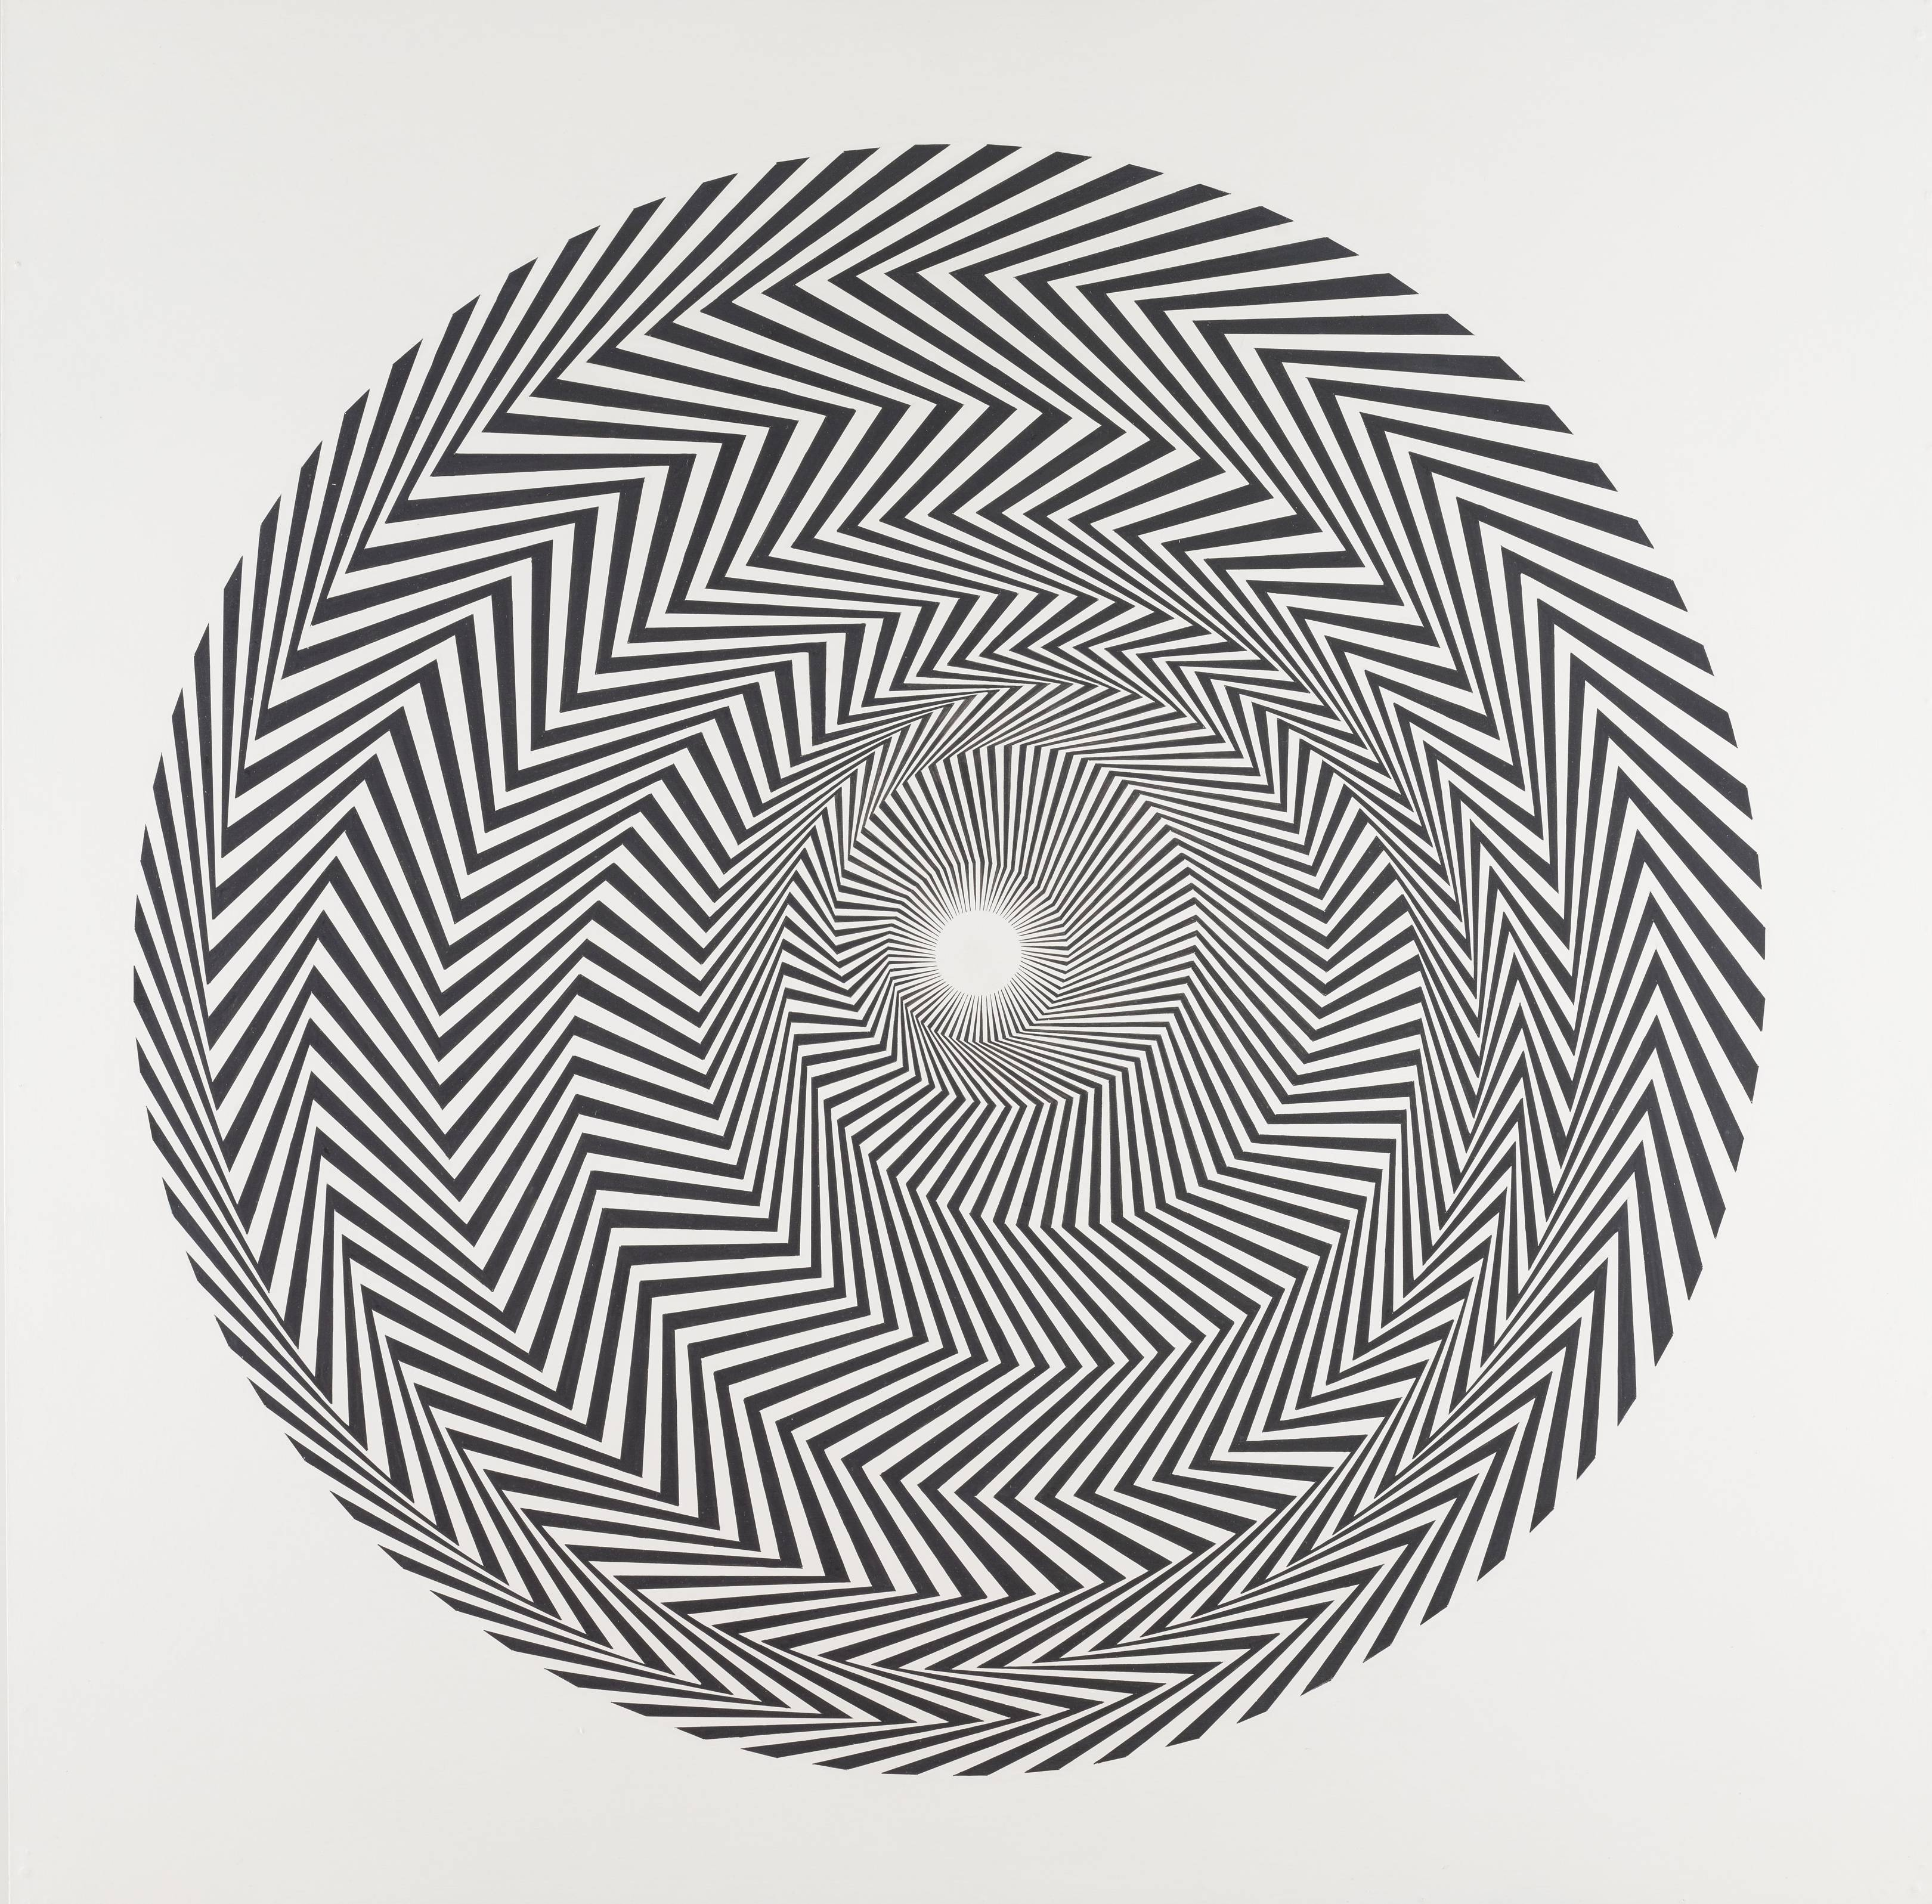 The Bridget Riley retrospective at the Hayward Gallery is not to be missed